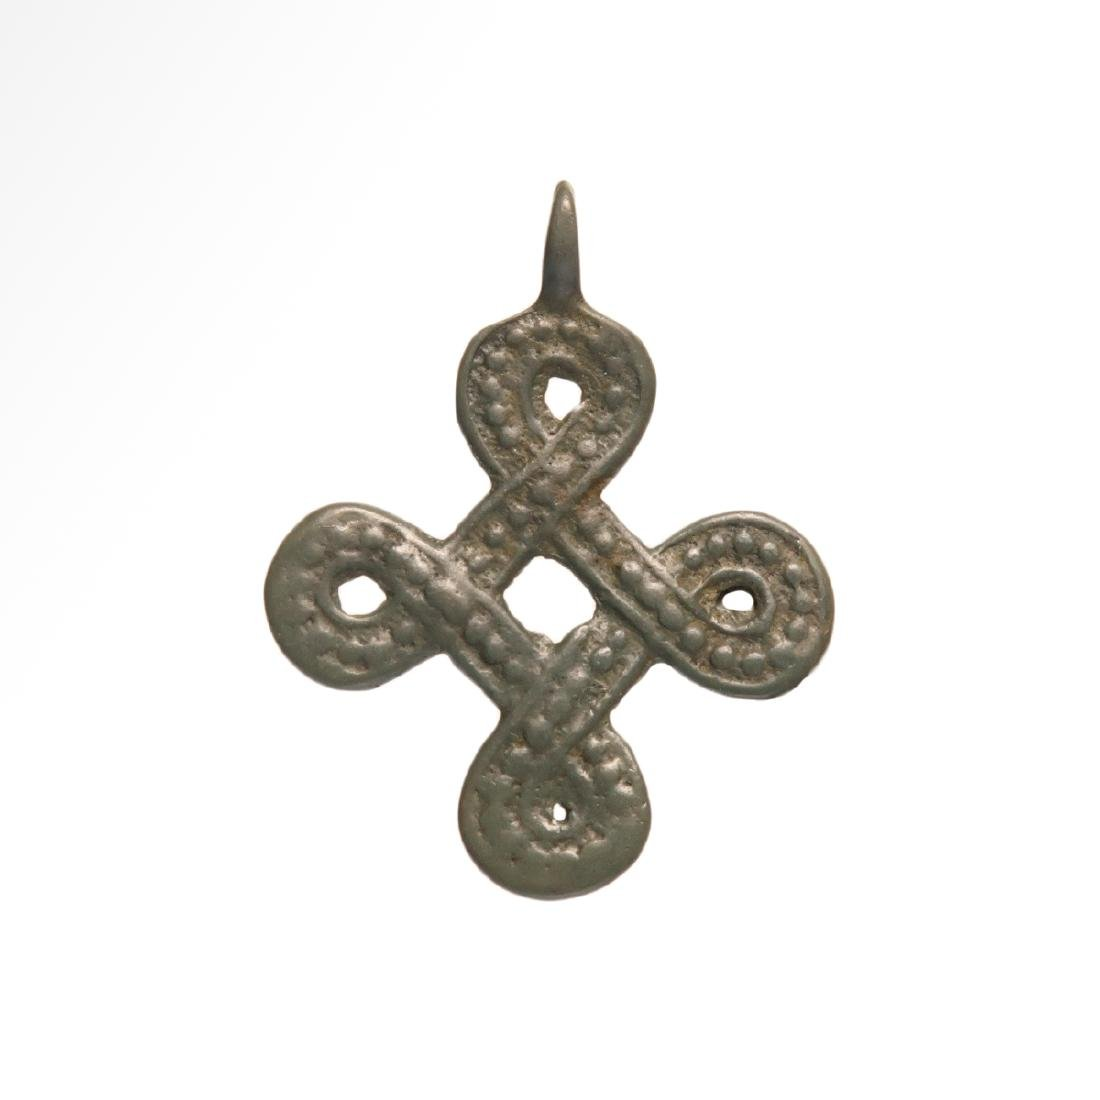 Viking Interlace Cross Pendant, 9th-11th century AD.